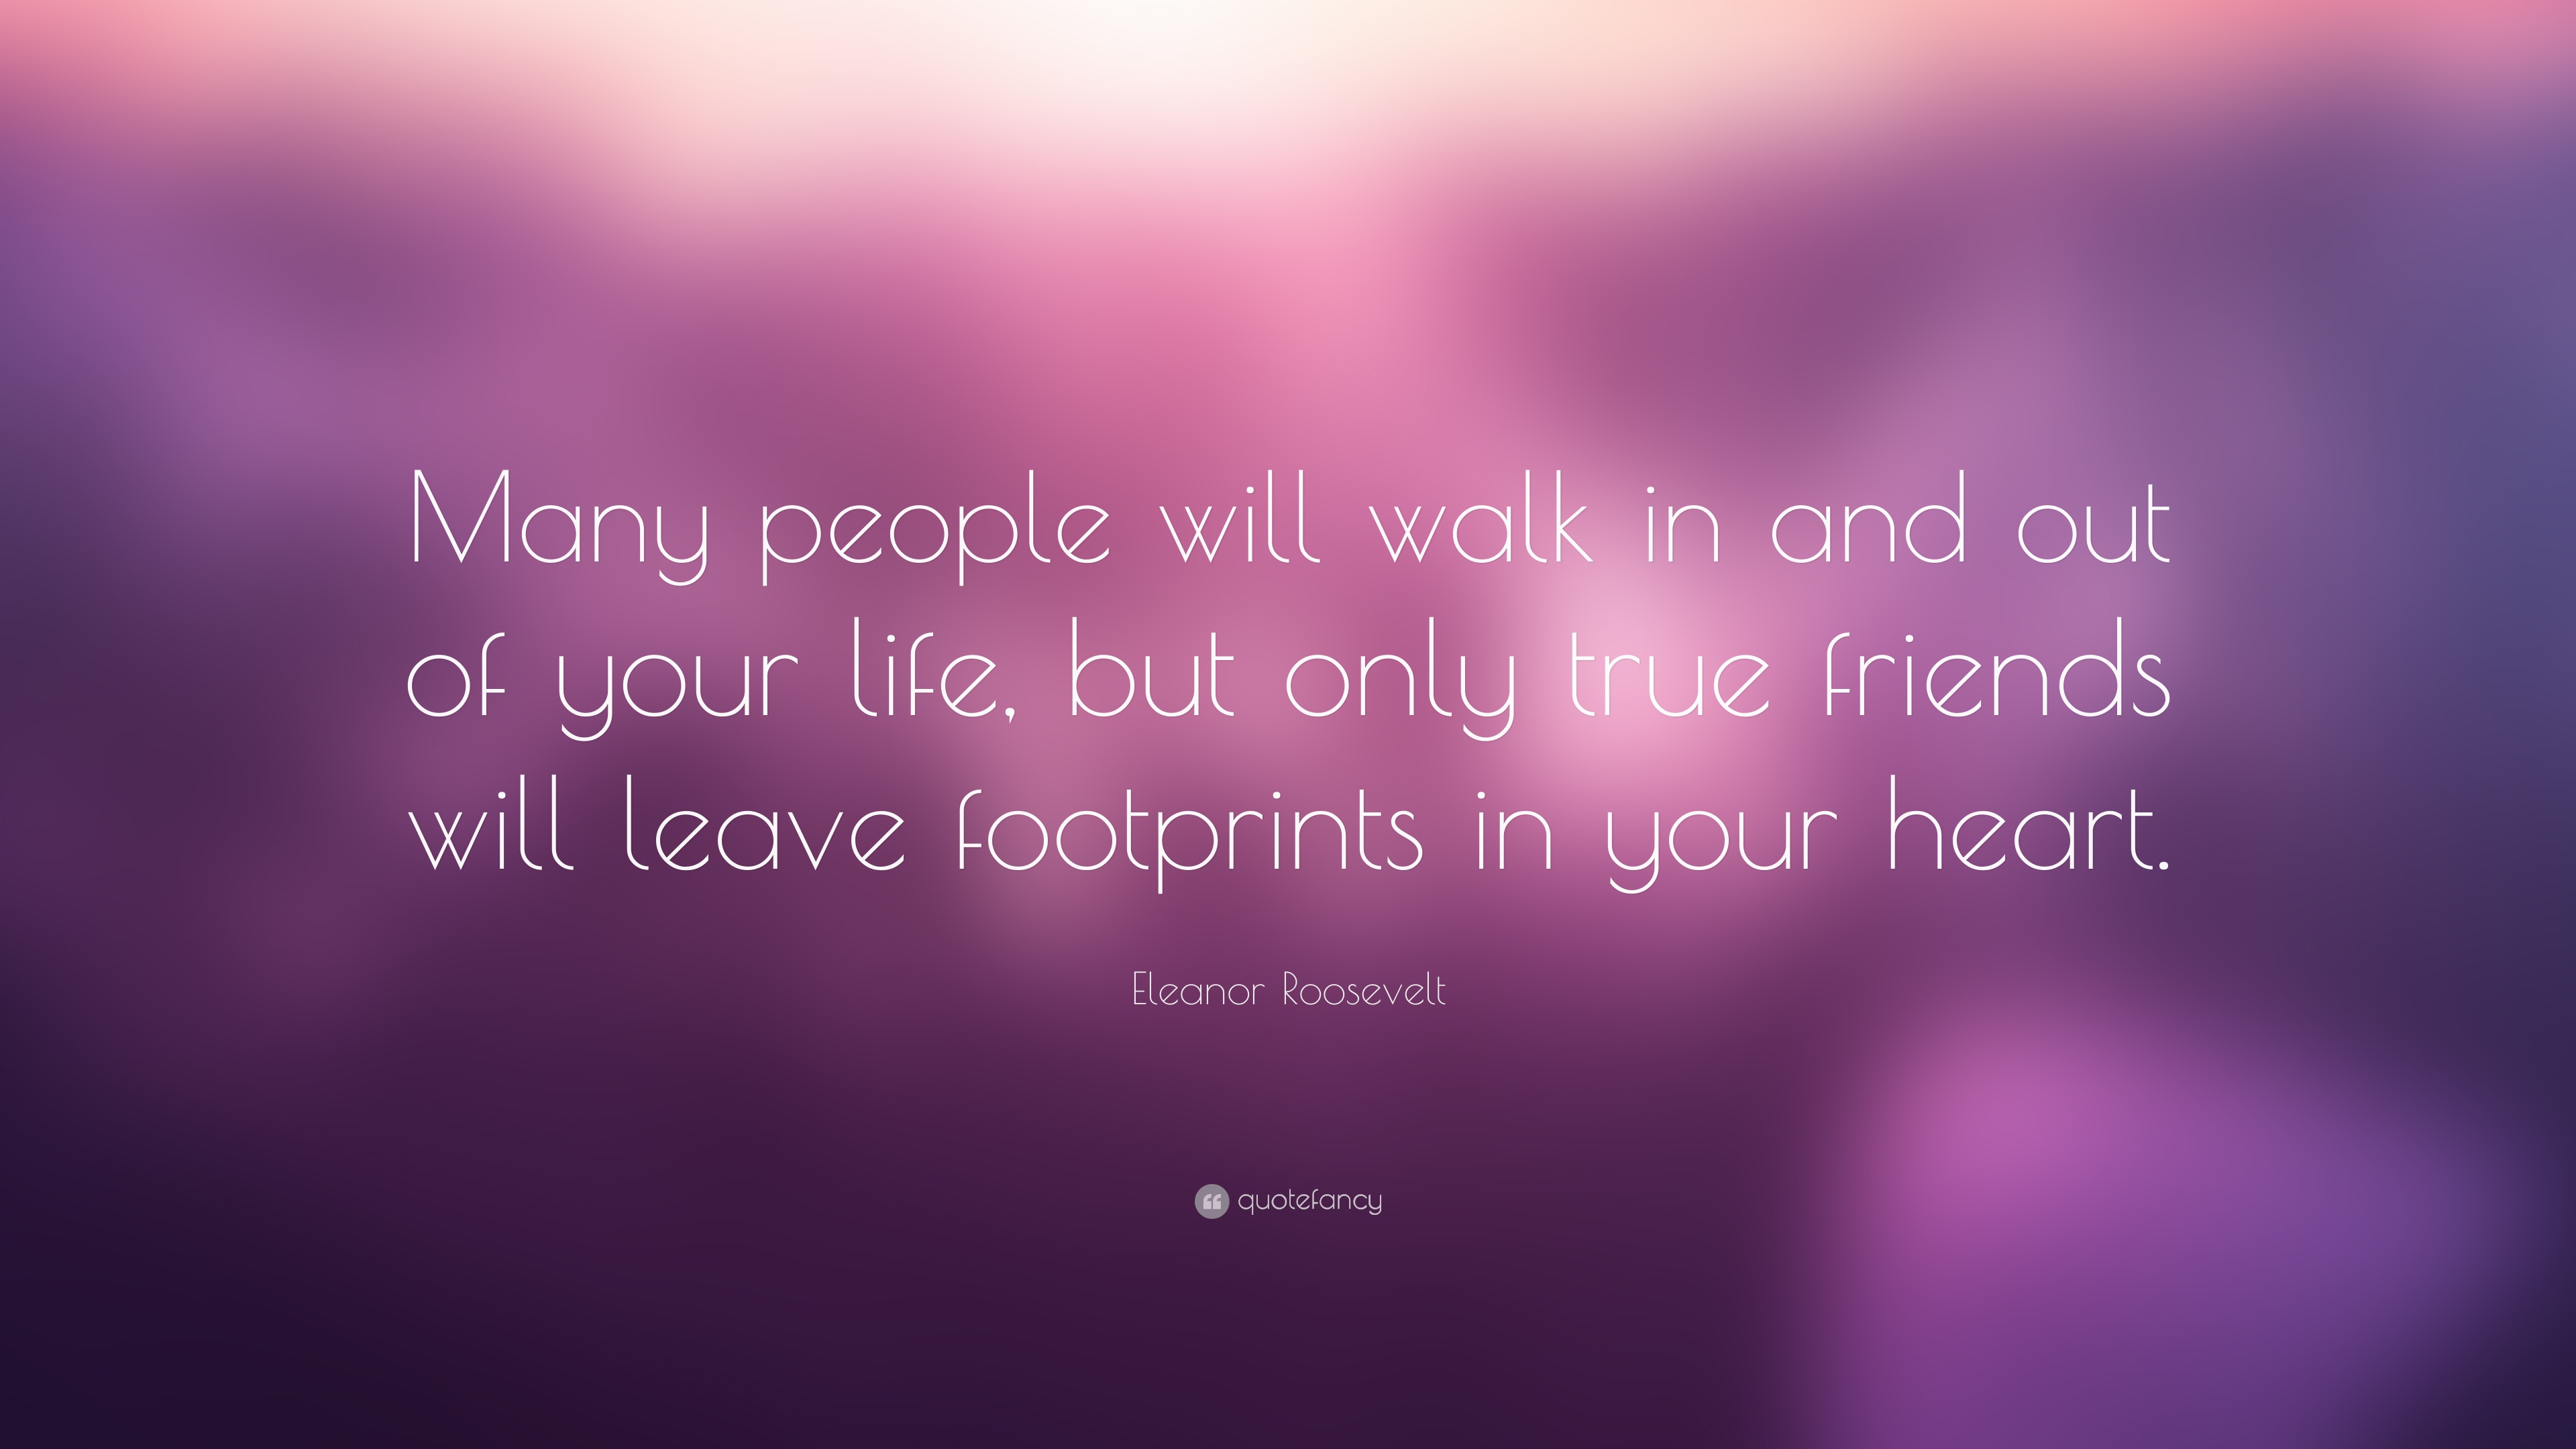 Eleanor Roosevelt Quote Many People Will Walk In And Out Of Your